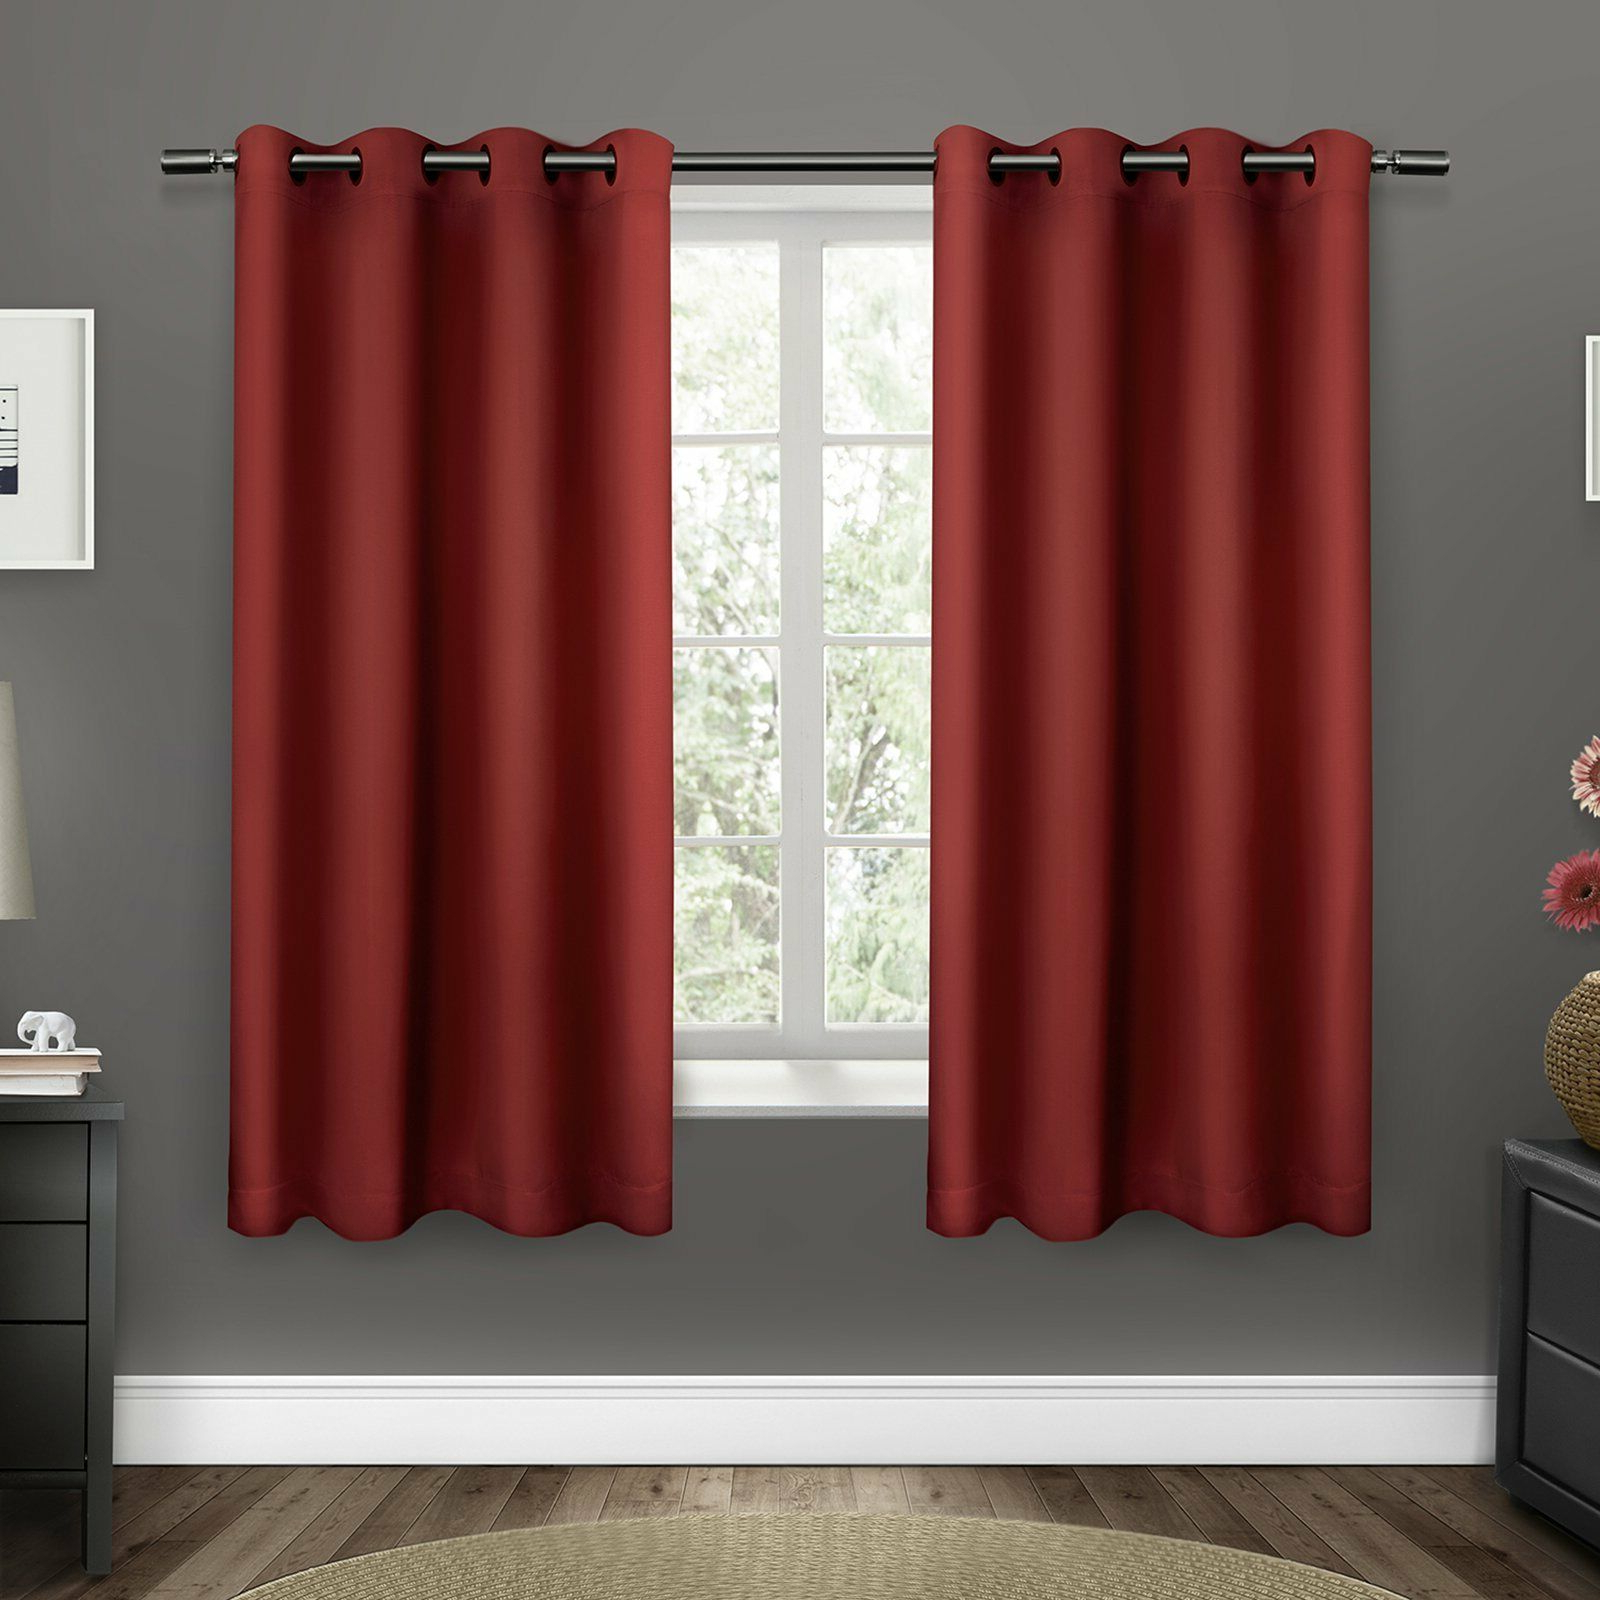 Favorite Upc 642472006601 – Exclusive Home Sateen Twill Weave Grommet For Sateen Twill Weave Insulated Blackout Window Curtain Panel Pairs (View 16 of 20)